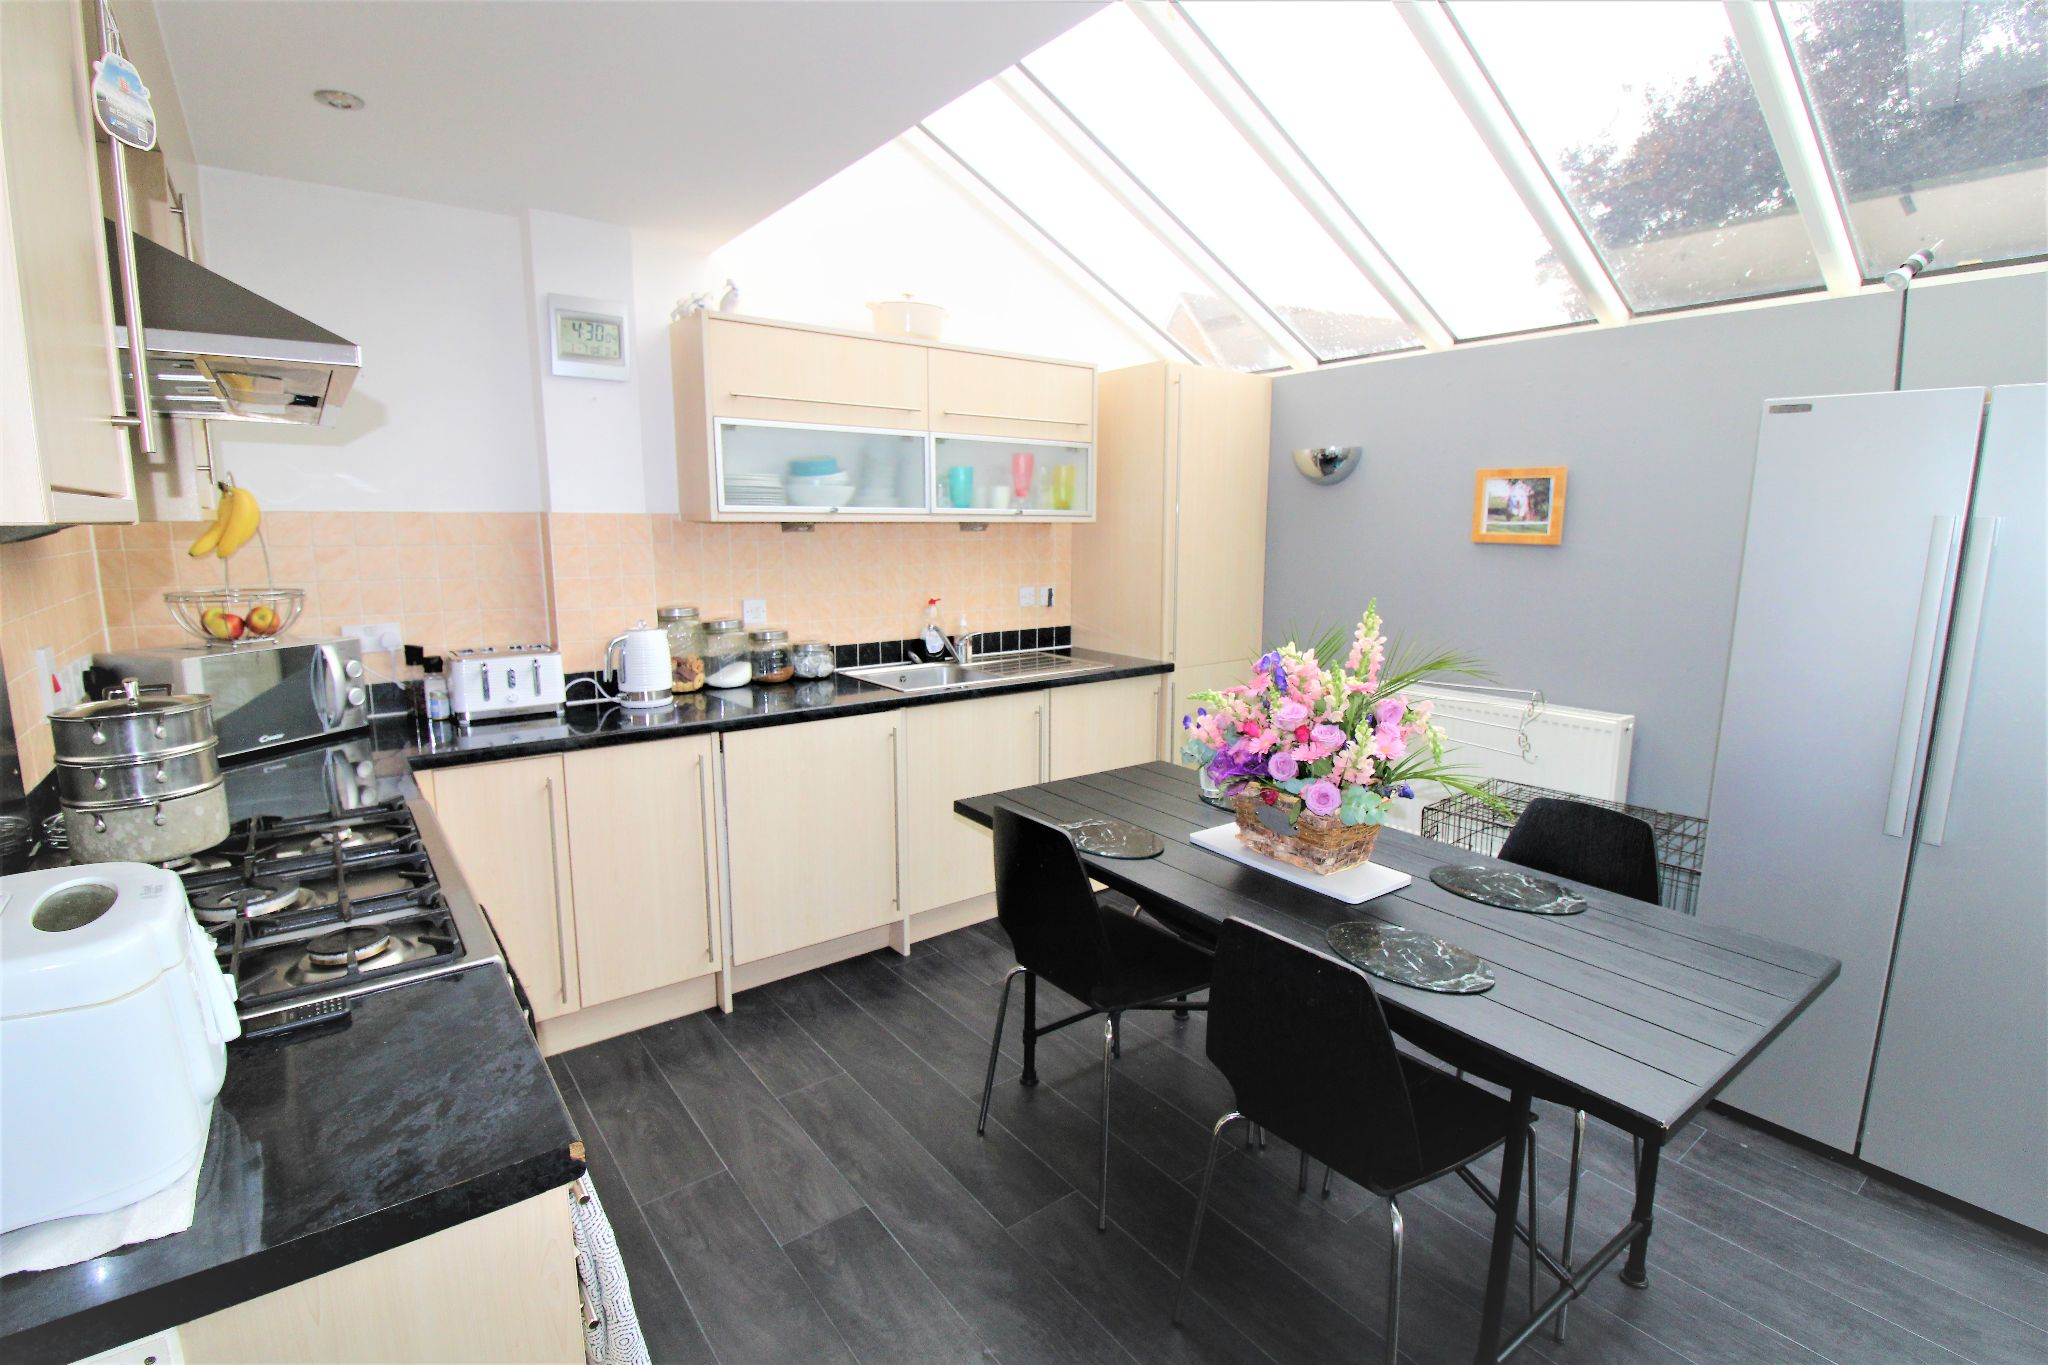 5 Bedroom Detached House For Sale - Kitchen